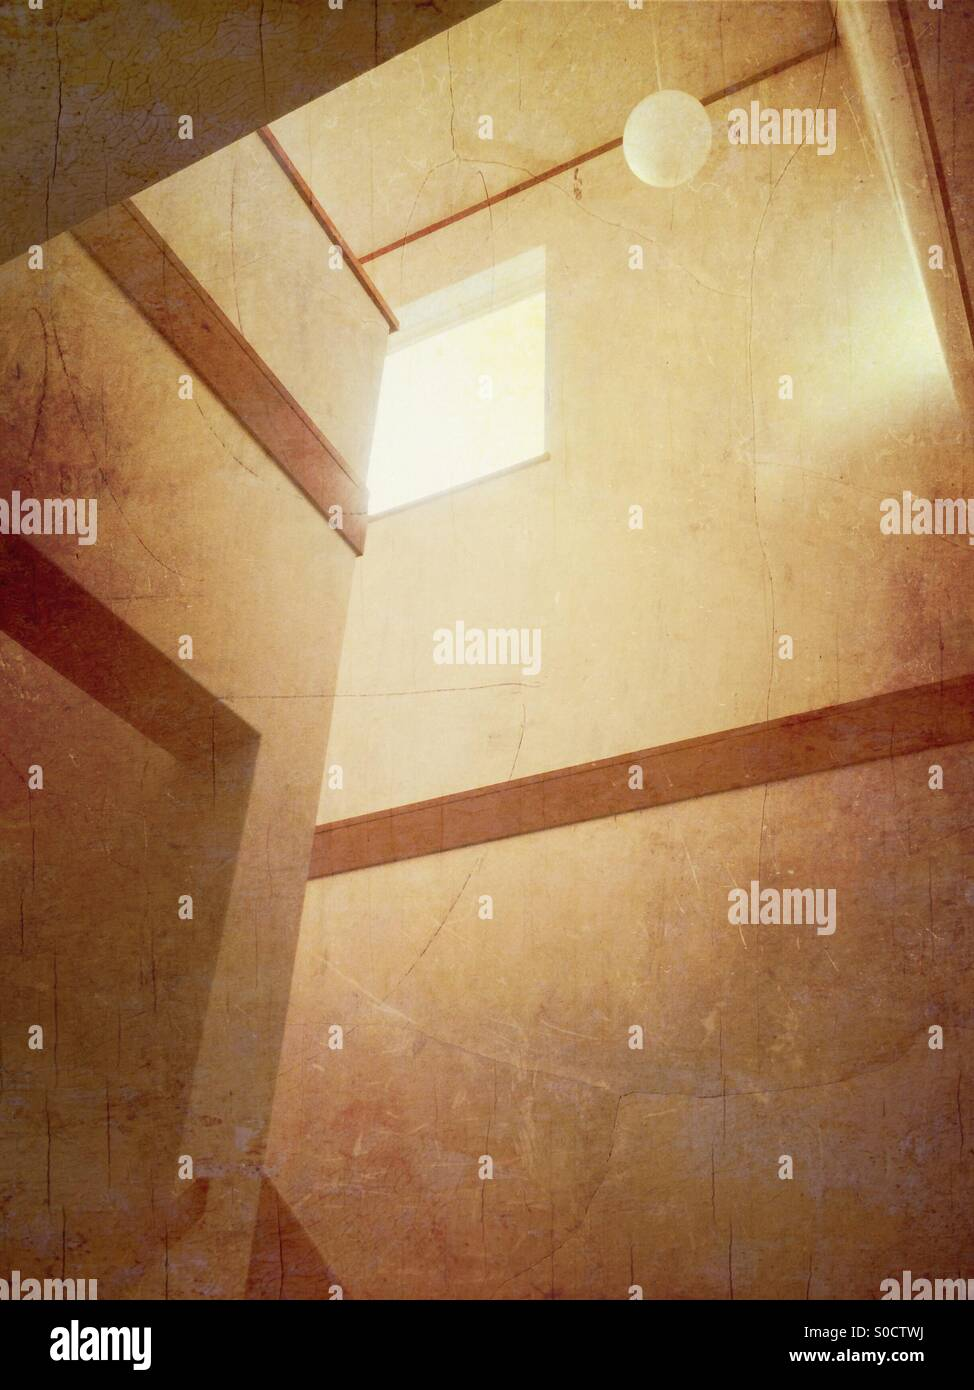 Walls and windows with white wallpaper and wooden brown trim. Vintage paper and grungy cracked textures overlay - Stock Image